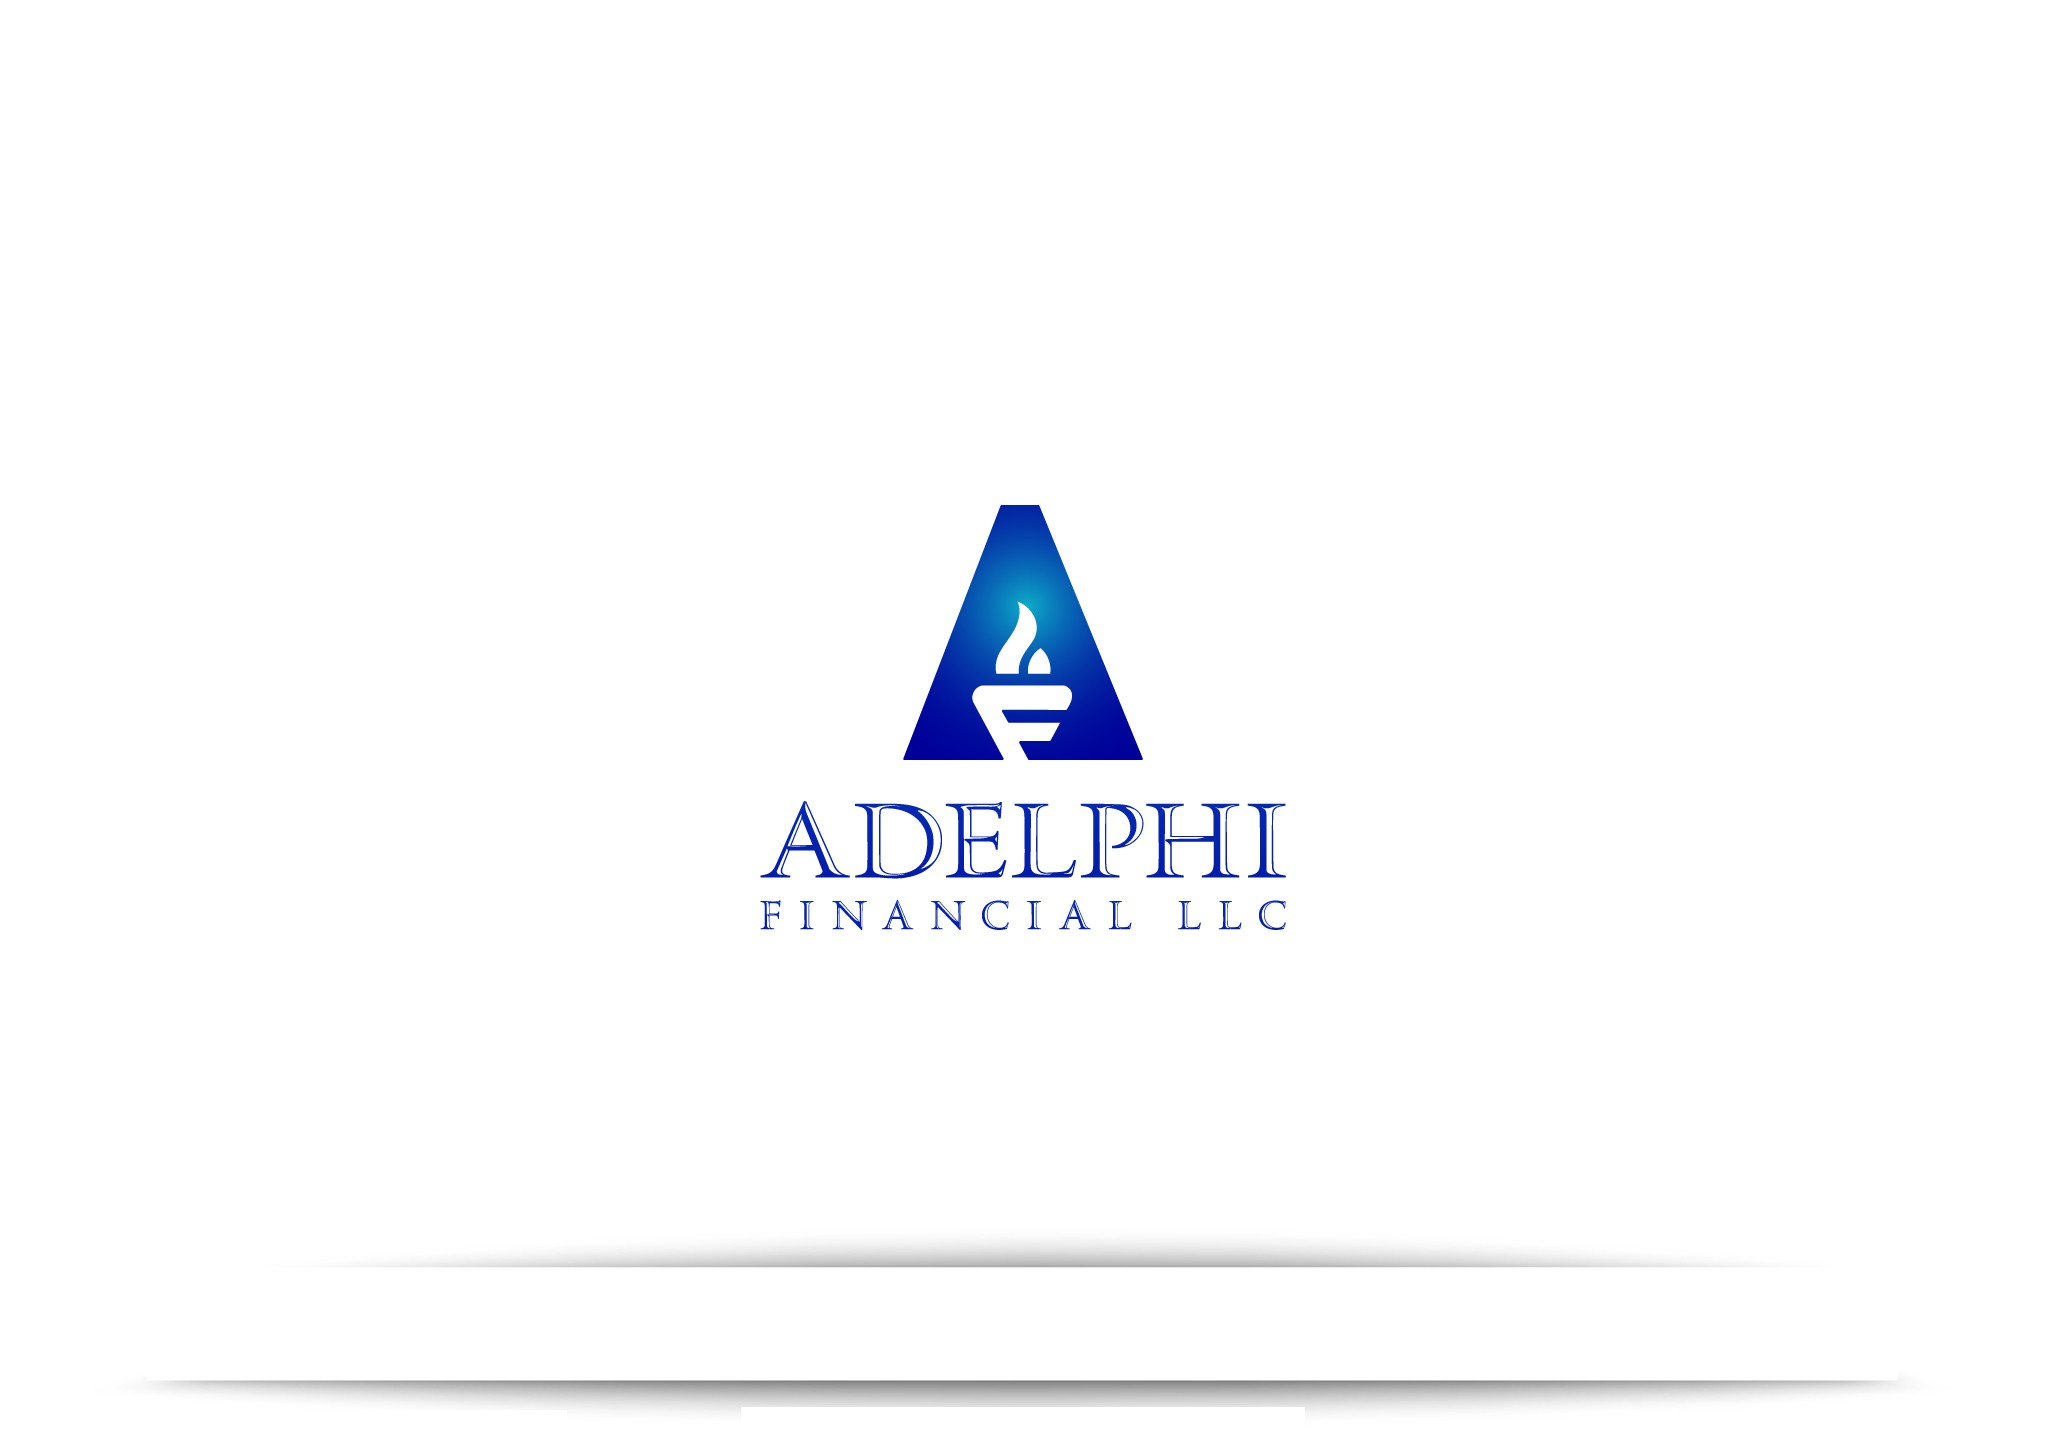 Help us reach the next level in financial services with a creative new logo!!